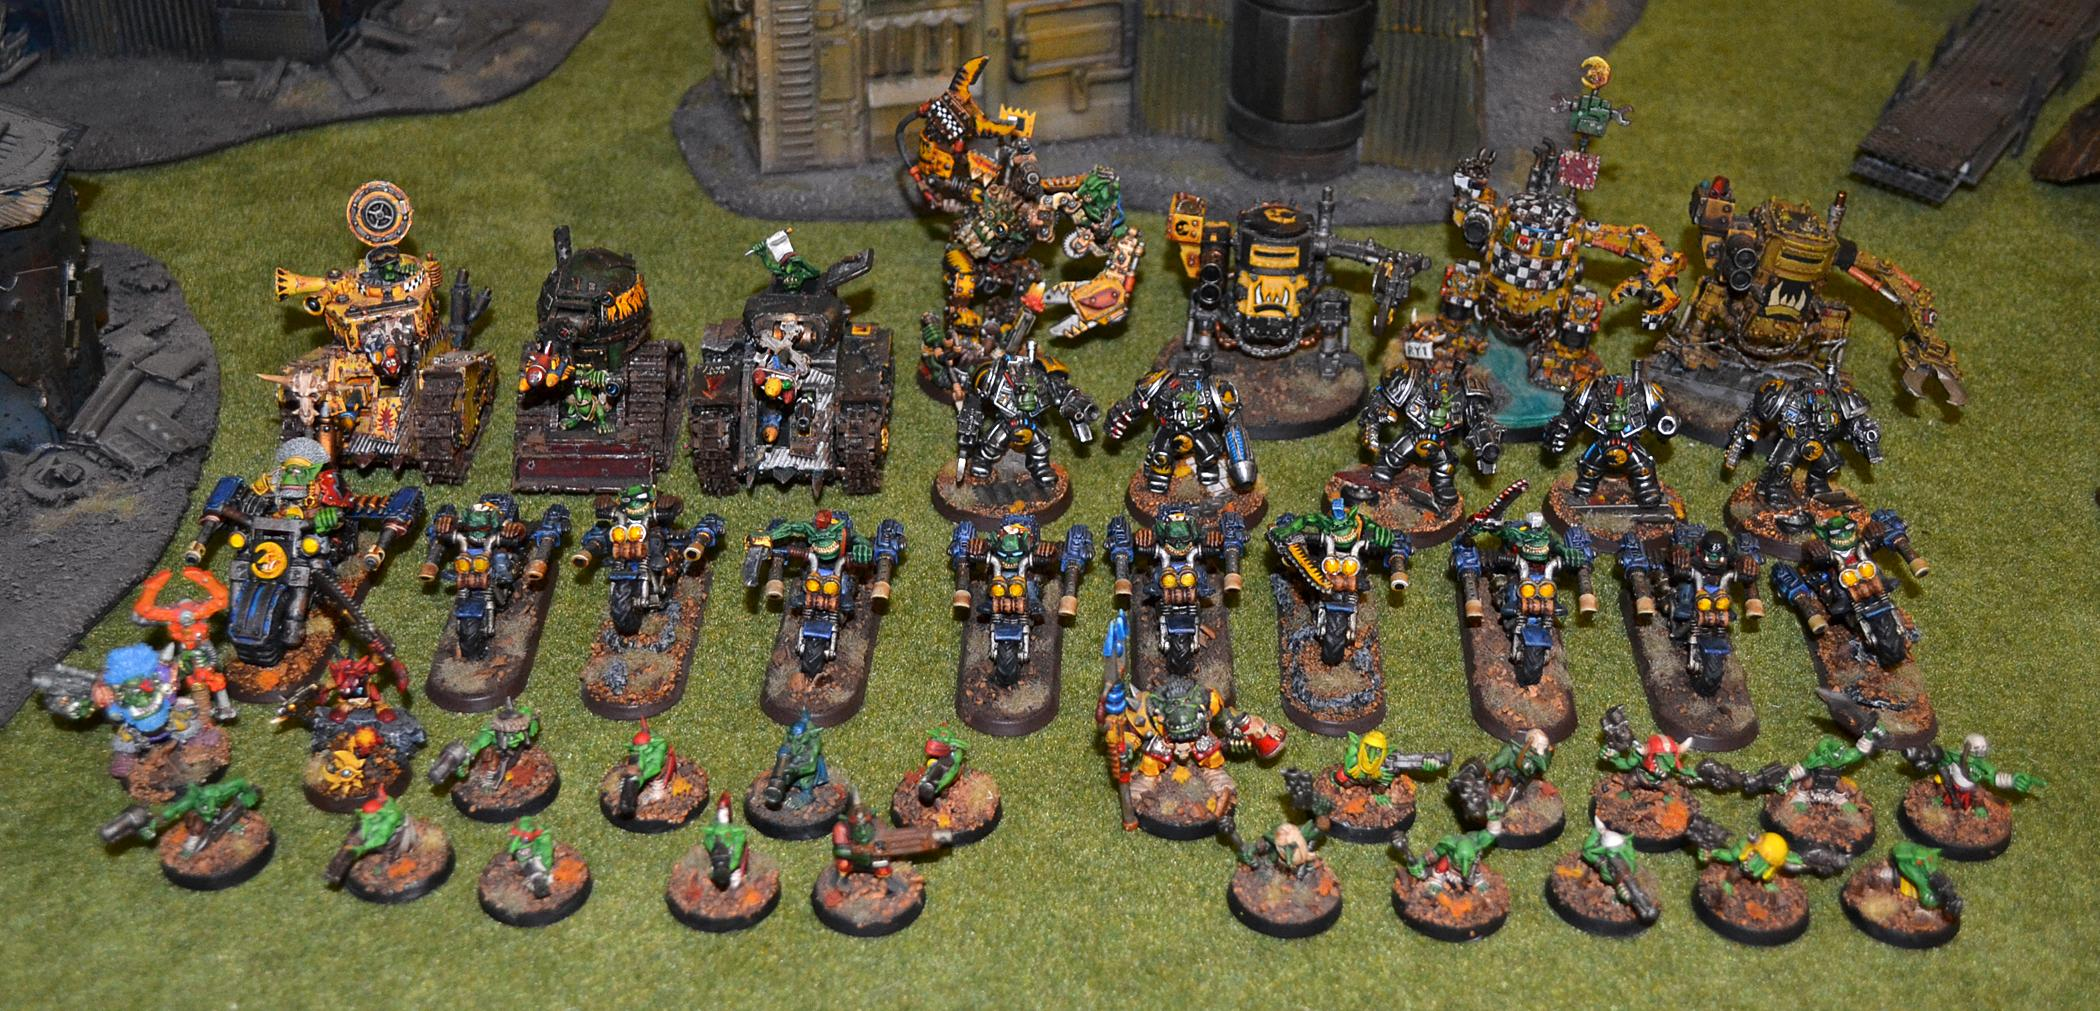 Army, Bad Moons, Orks, Warhammer 40,000